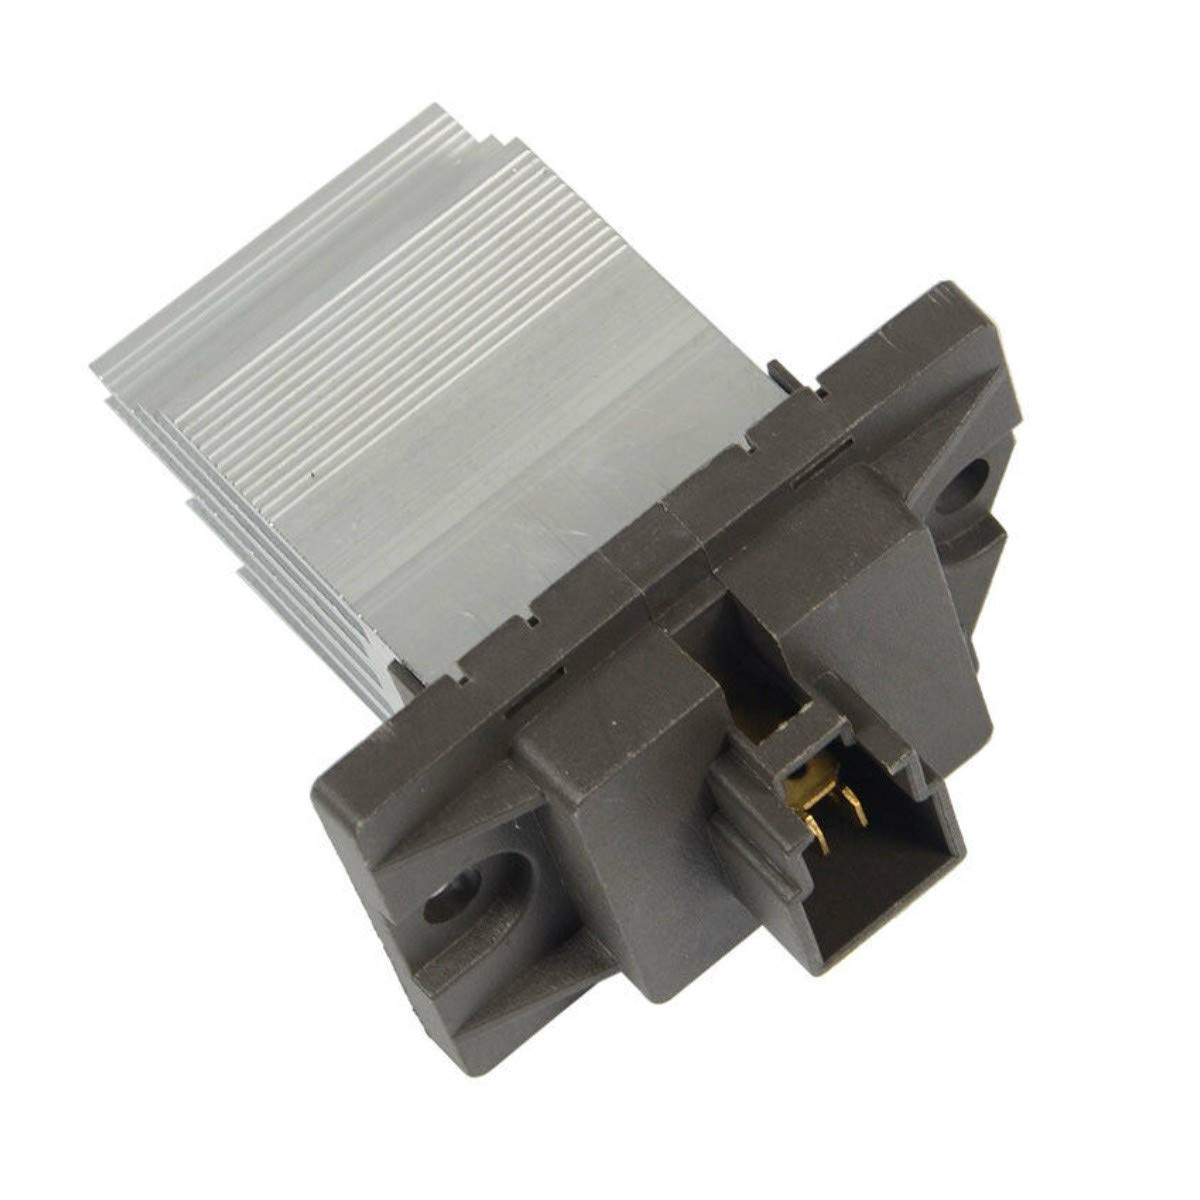 AIP Electronics HVAC Blower Motor Resistor AC Heater Switch Control Compatible Replacement For 2001-2009 Hyundai Elantra Santa Fe Tiburon and Tucson Oem Fit BMR149